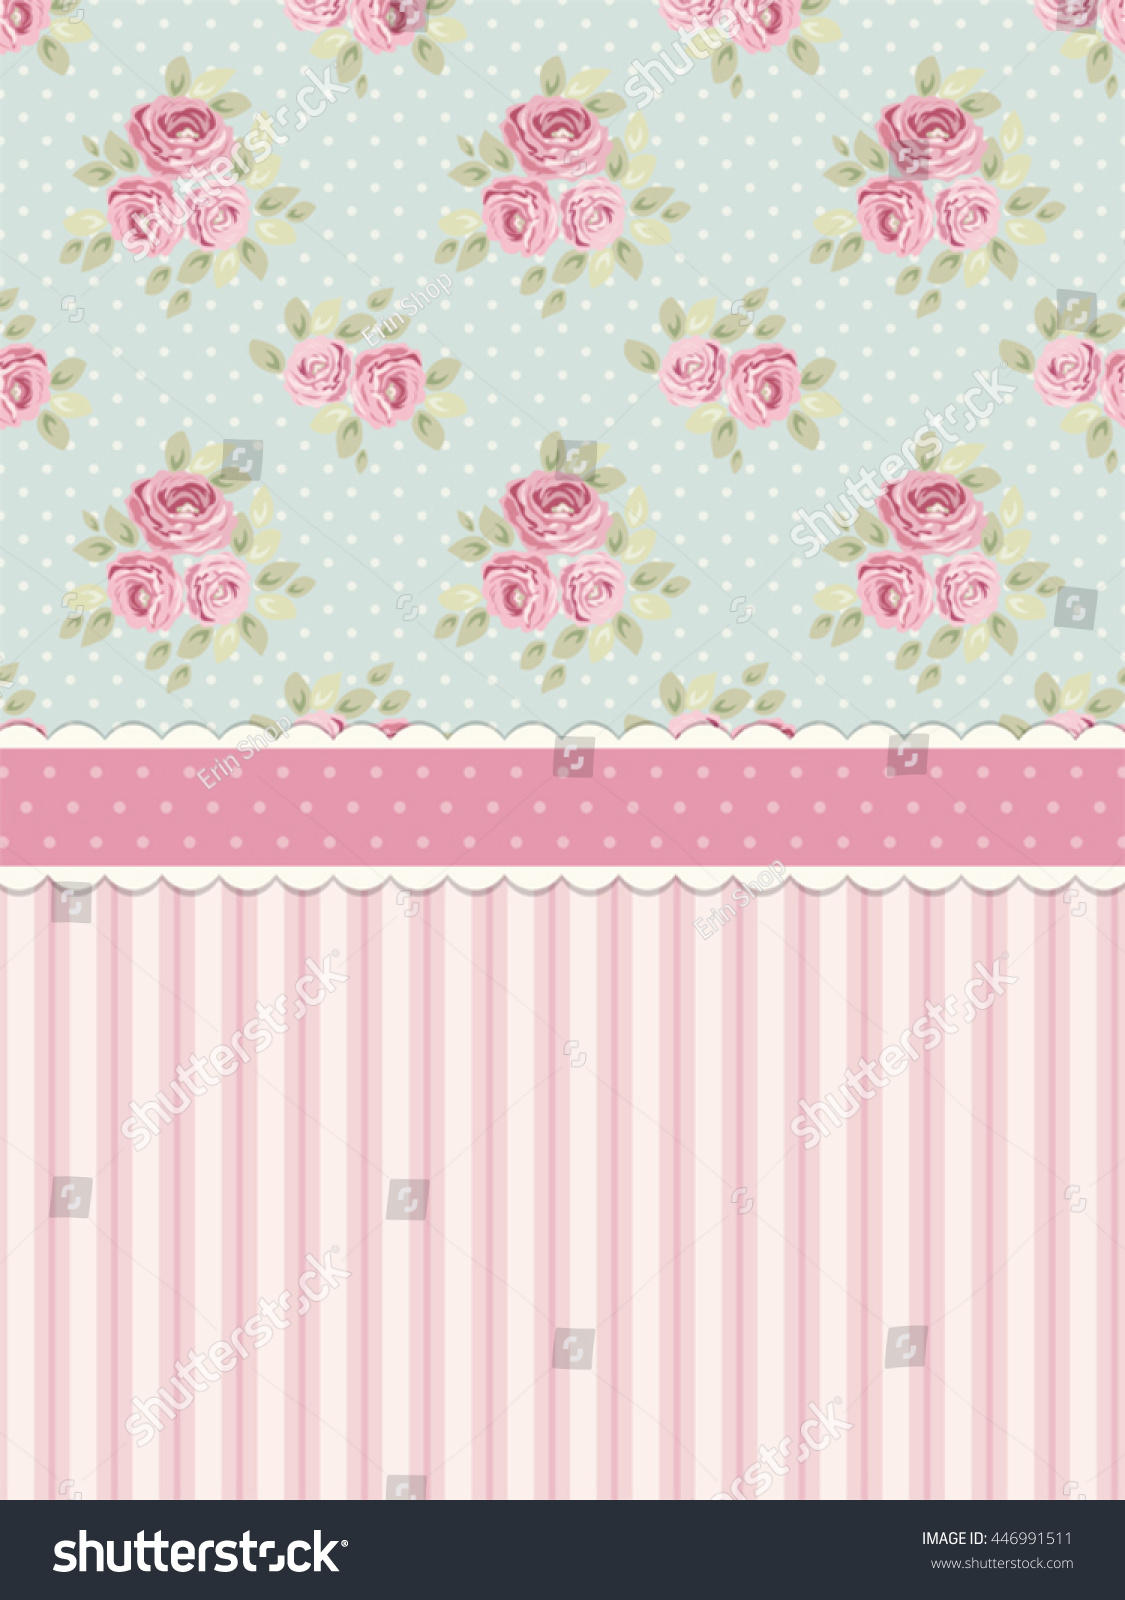 Cute shabby chic background roses polka stock vector for Background decoration images